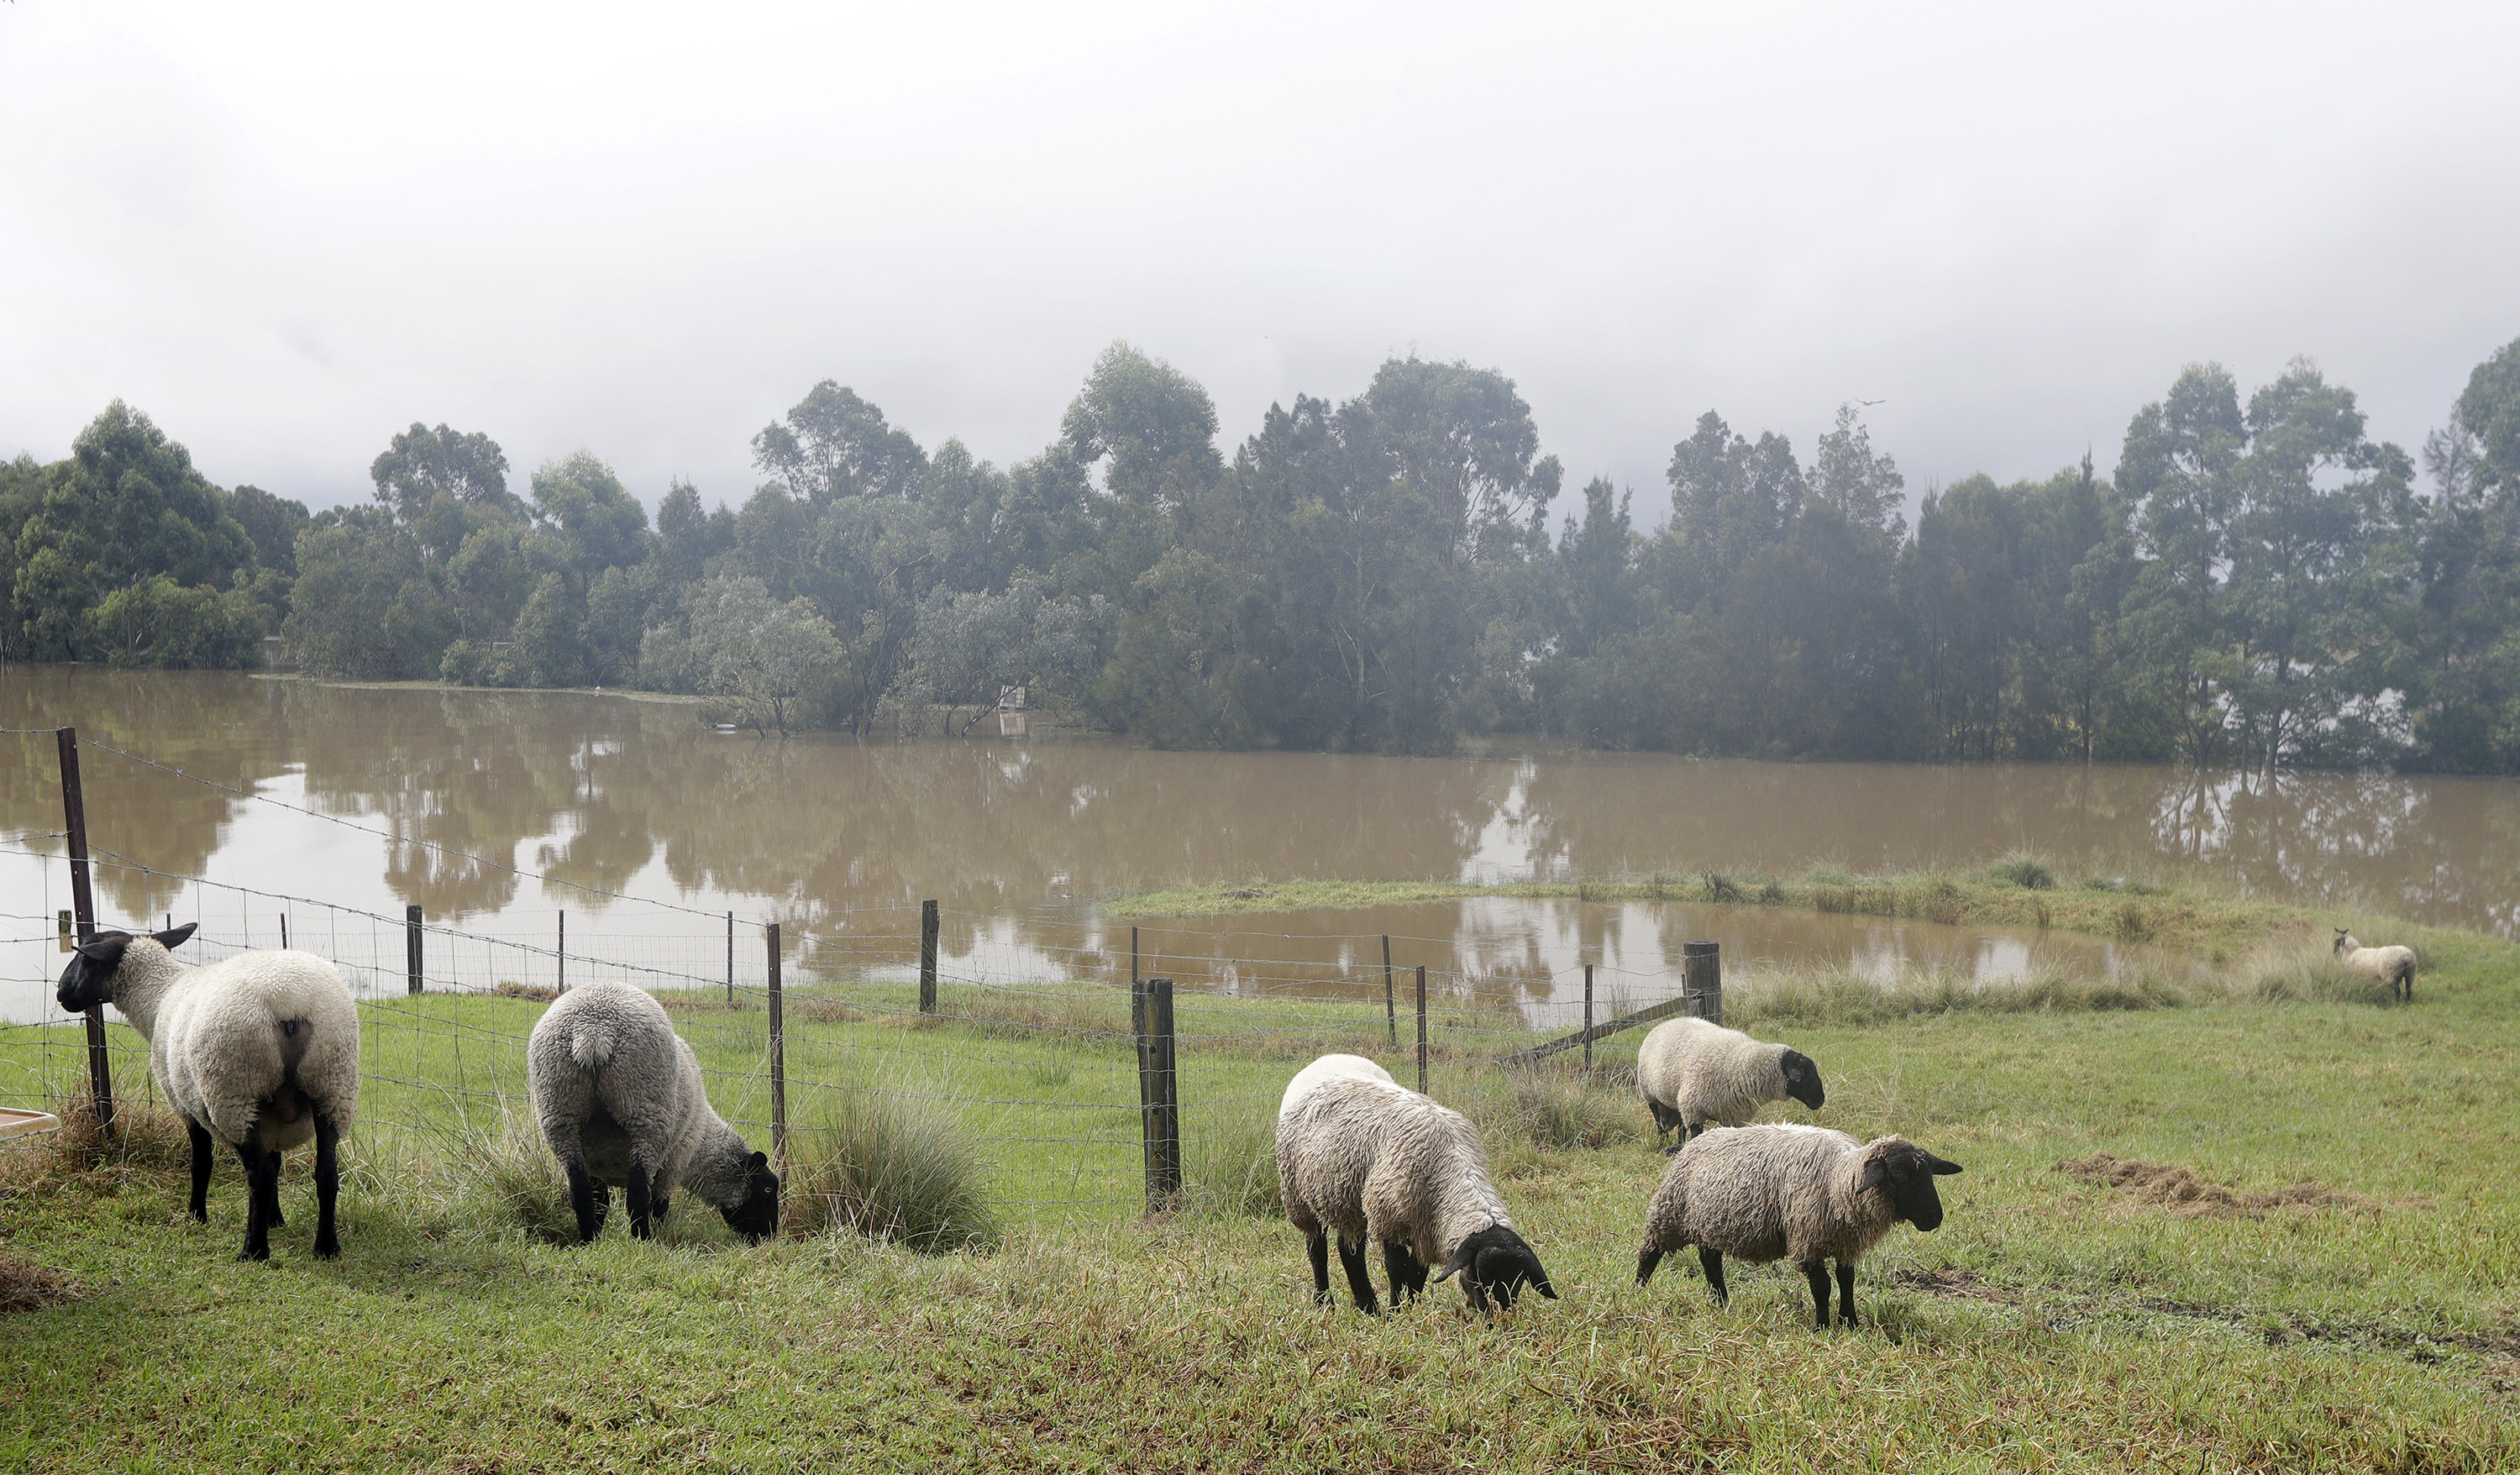 a flock of sheep on a hillside with a flood in the background